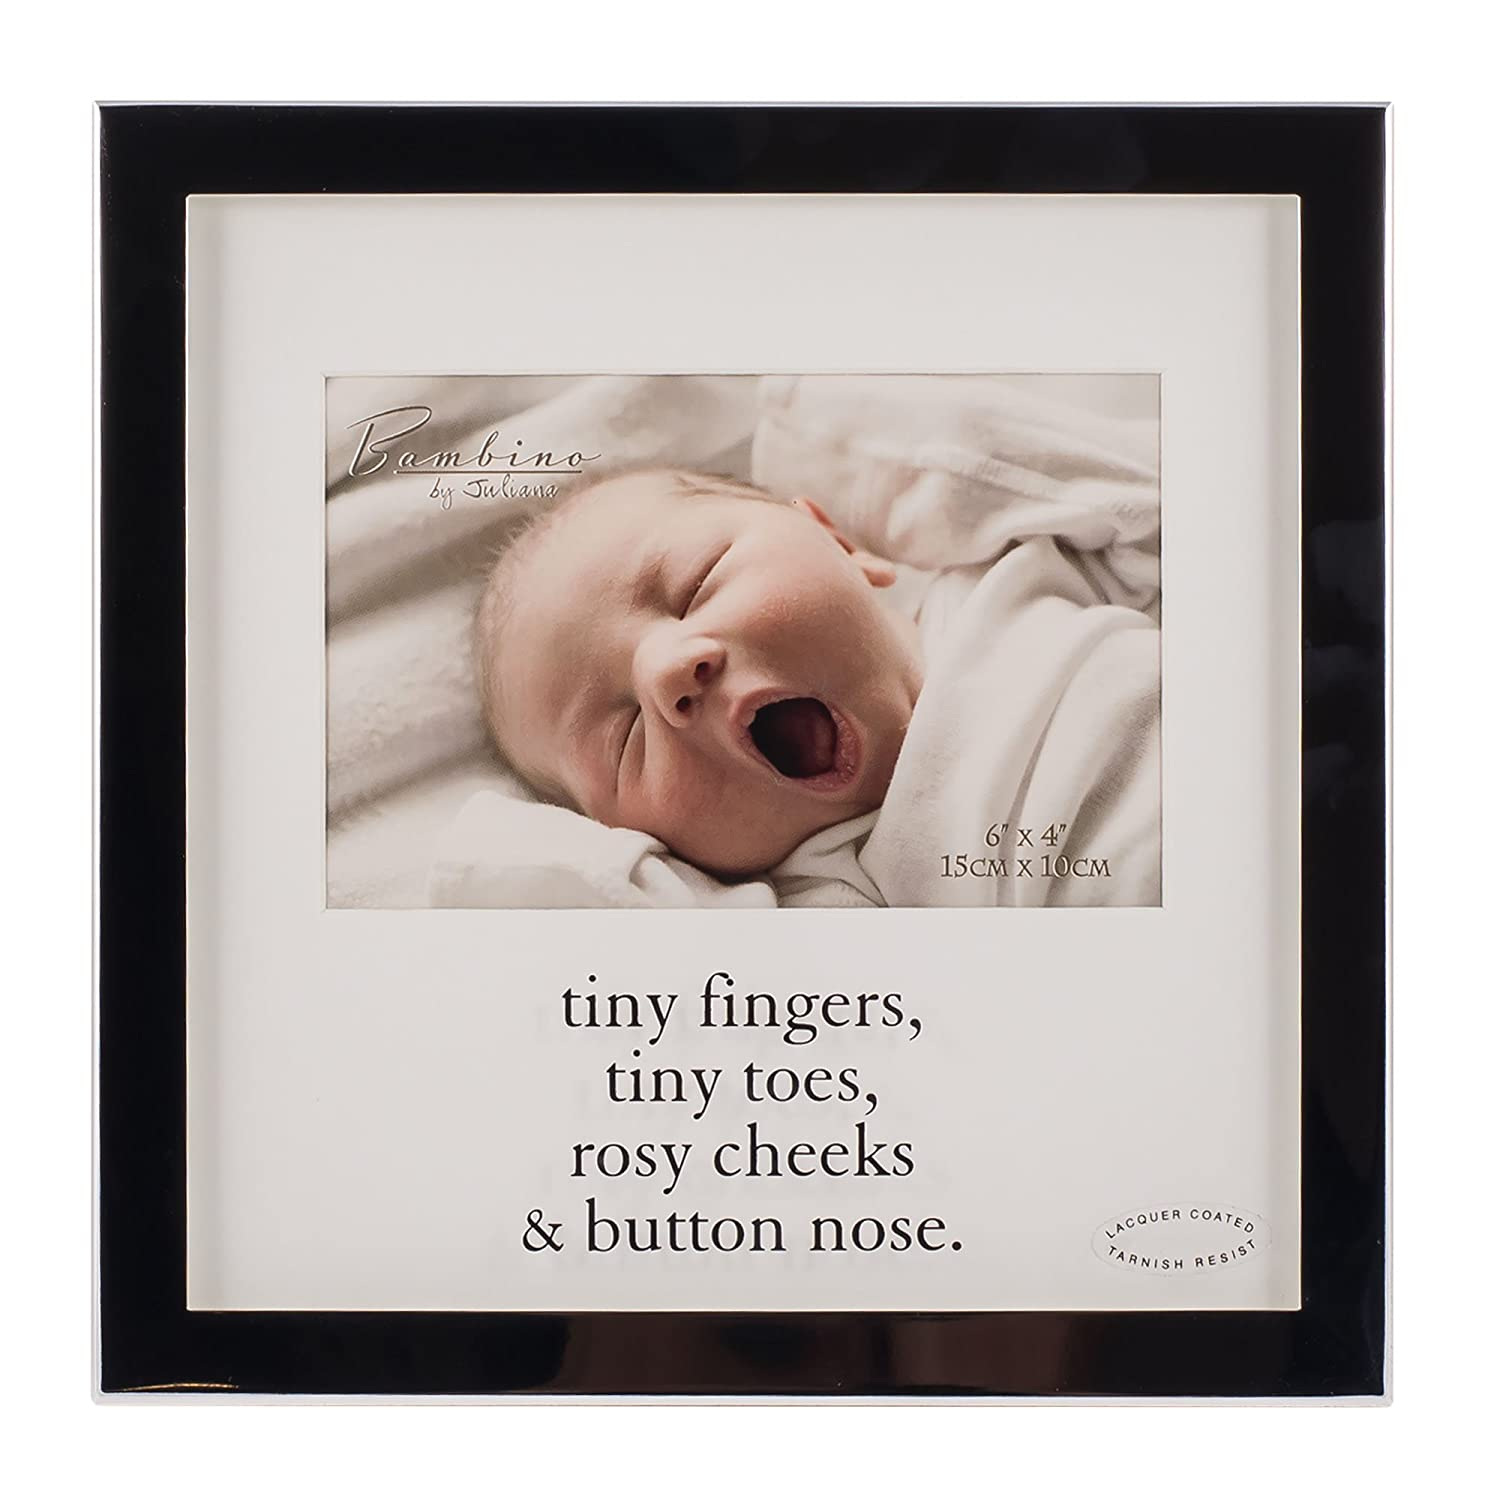 Amazon Com Tiny Fingers Tiny Toes Rosy Cheeks Button Nose 4x6 Baby Frame Baby